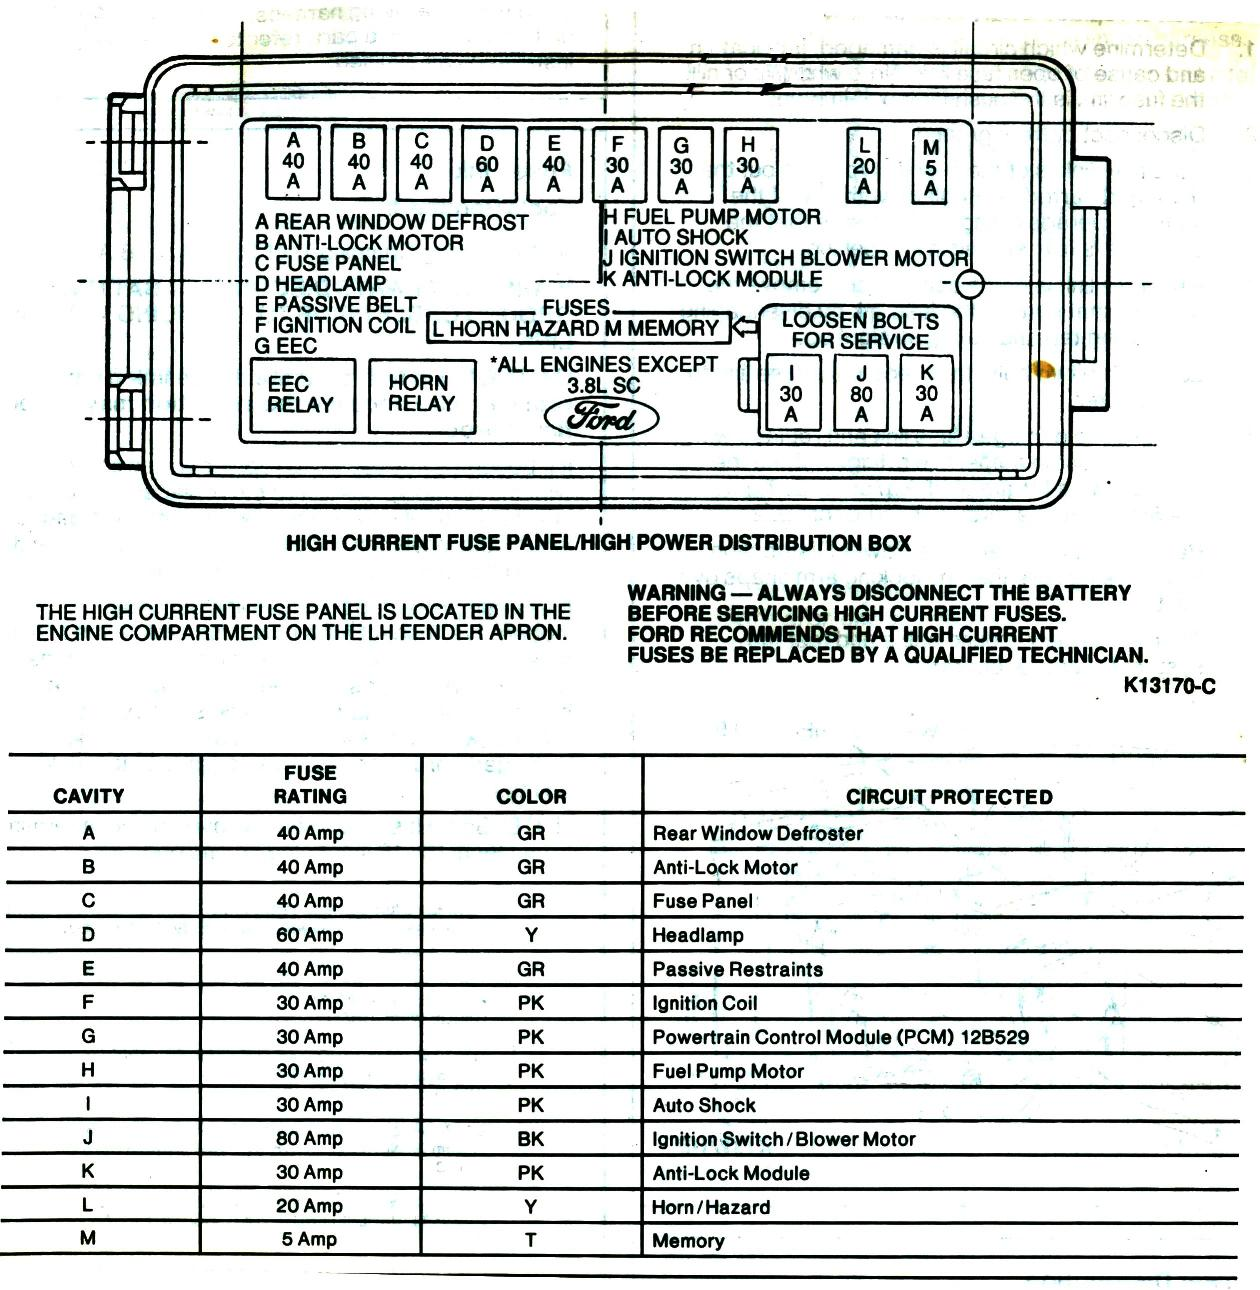 dist box under dash fuse box diagram? 2002 ford thunderbird fuse box diagram at eliteediting.co